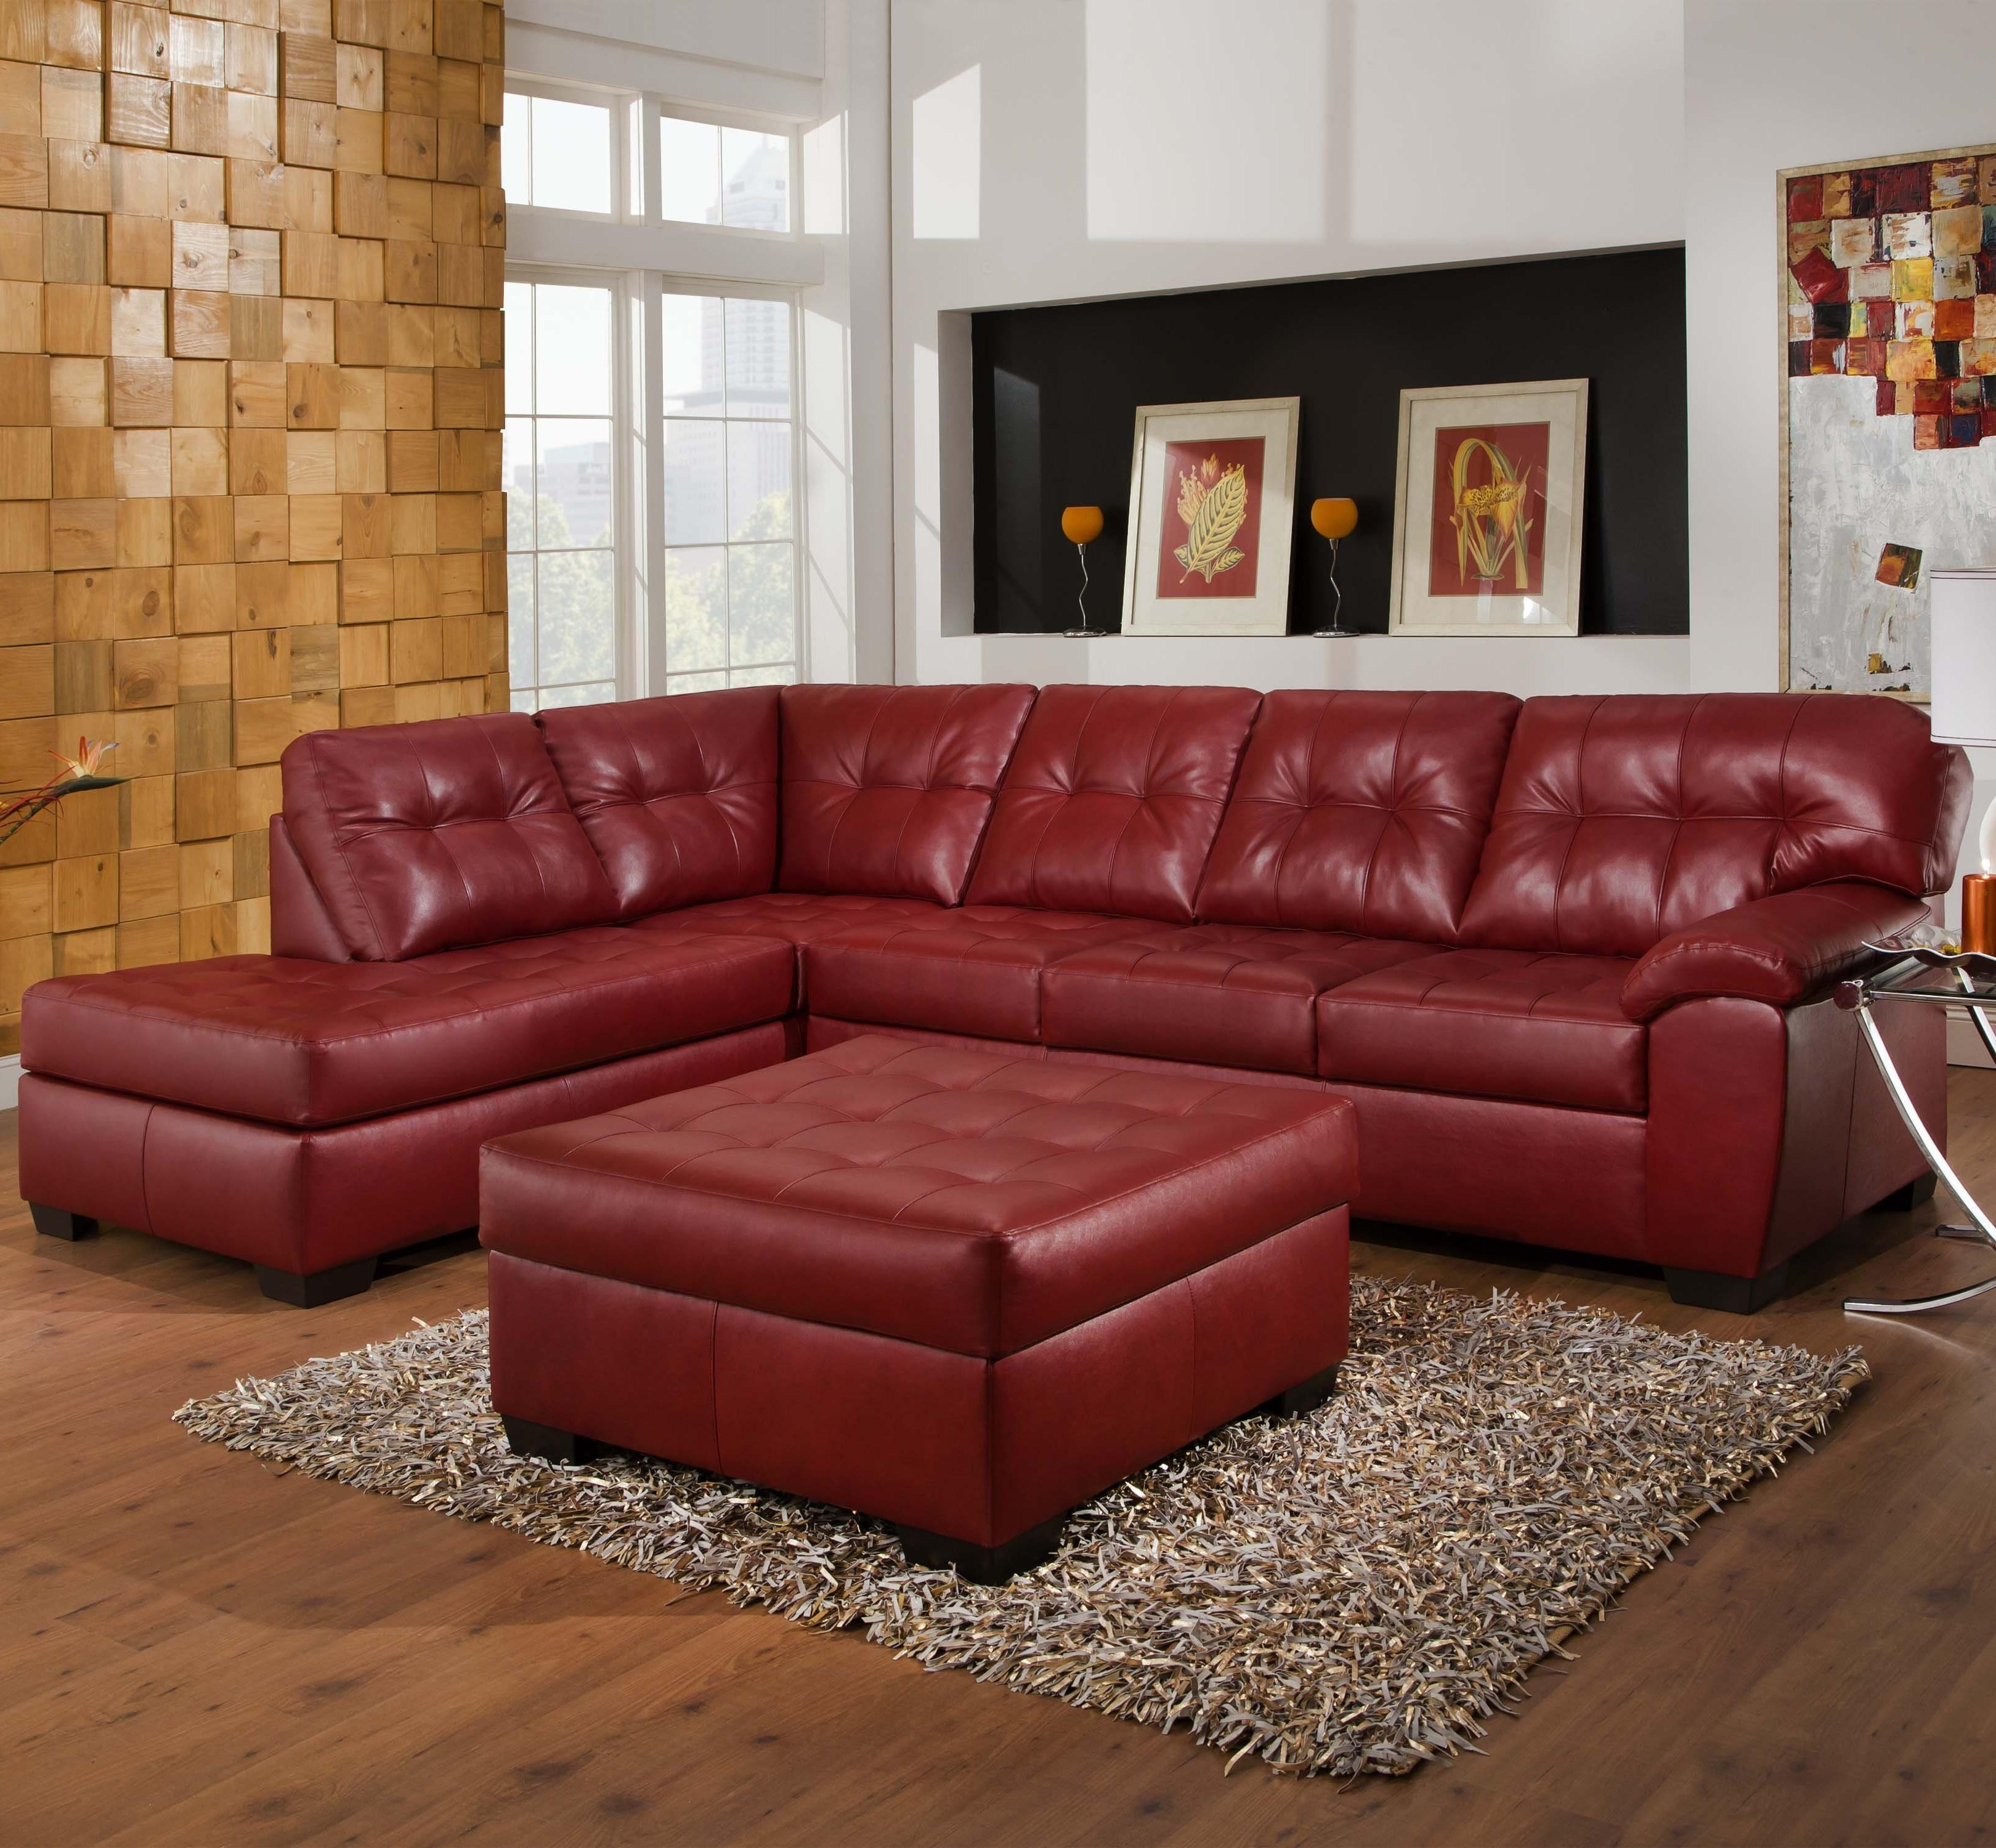 Displaying Photos Of Sectional Sofas At Birmingham Al View 17 Of 20